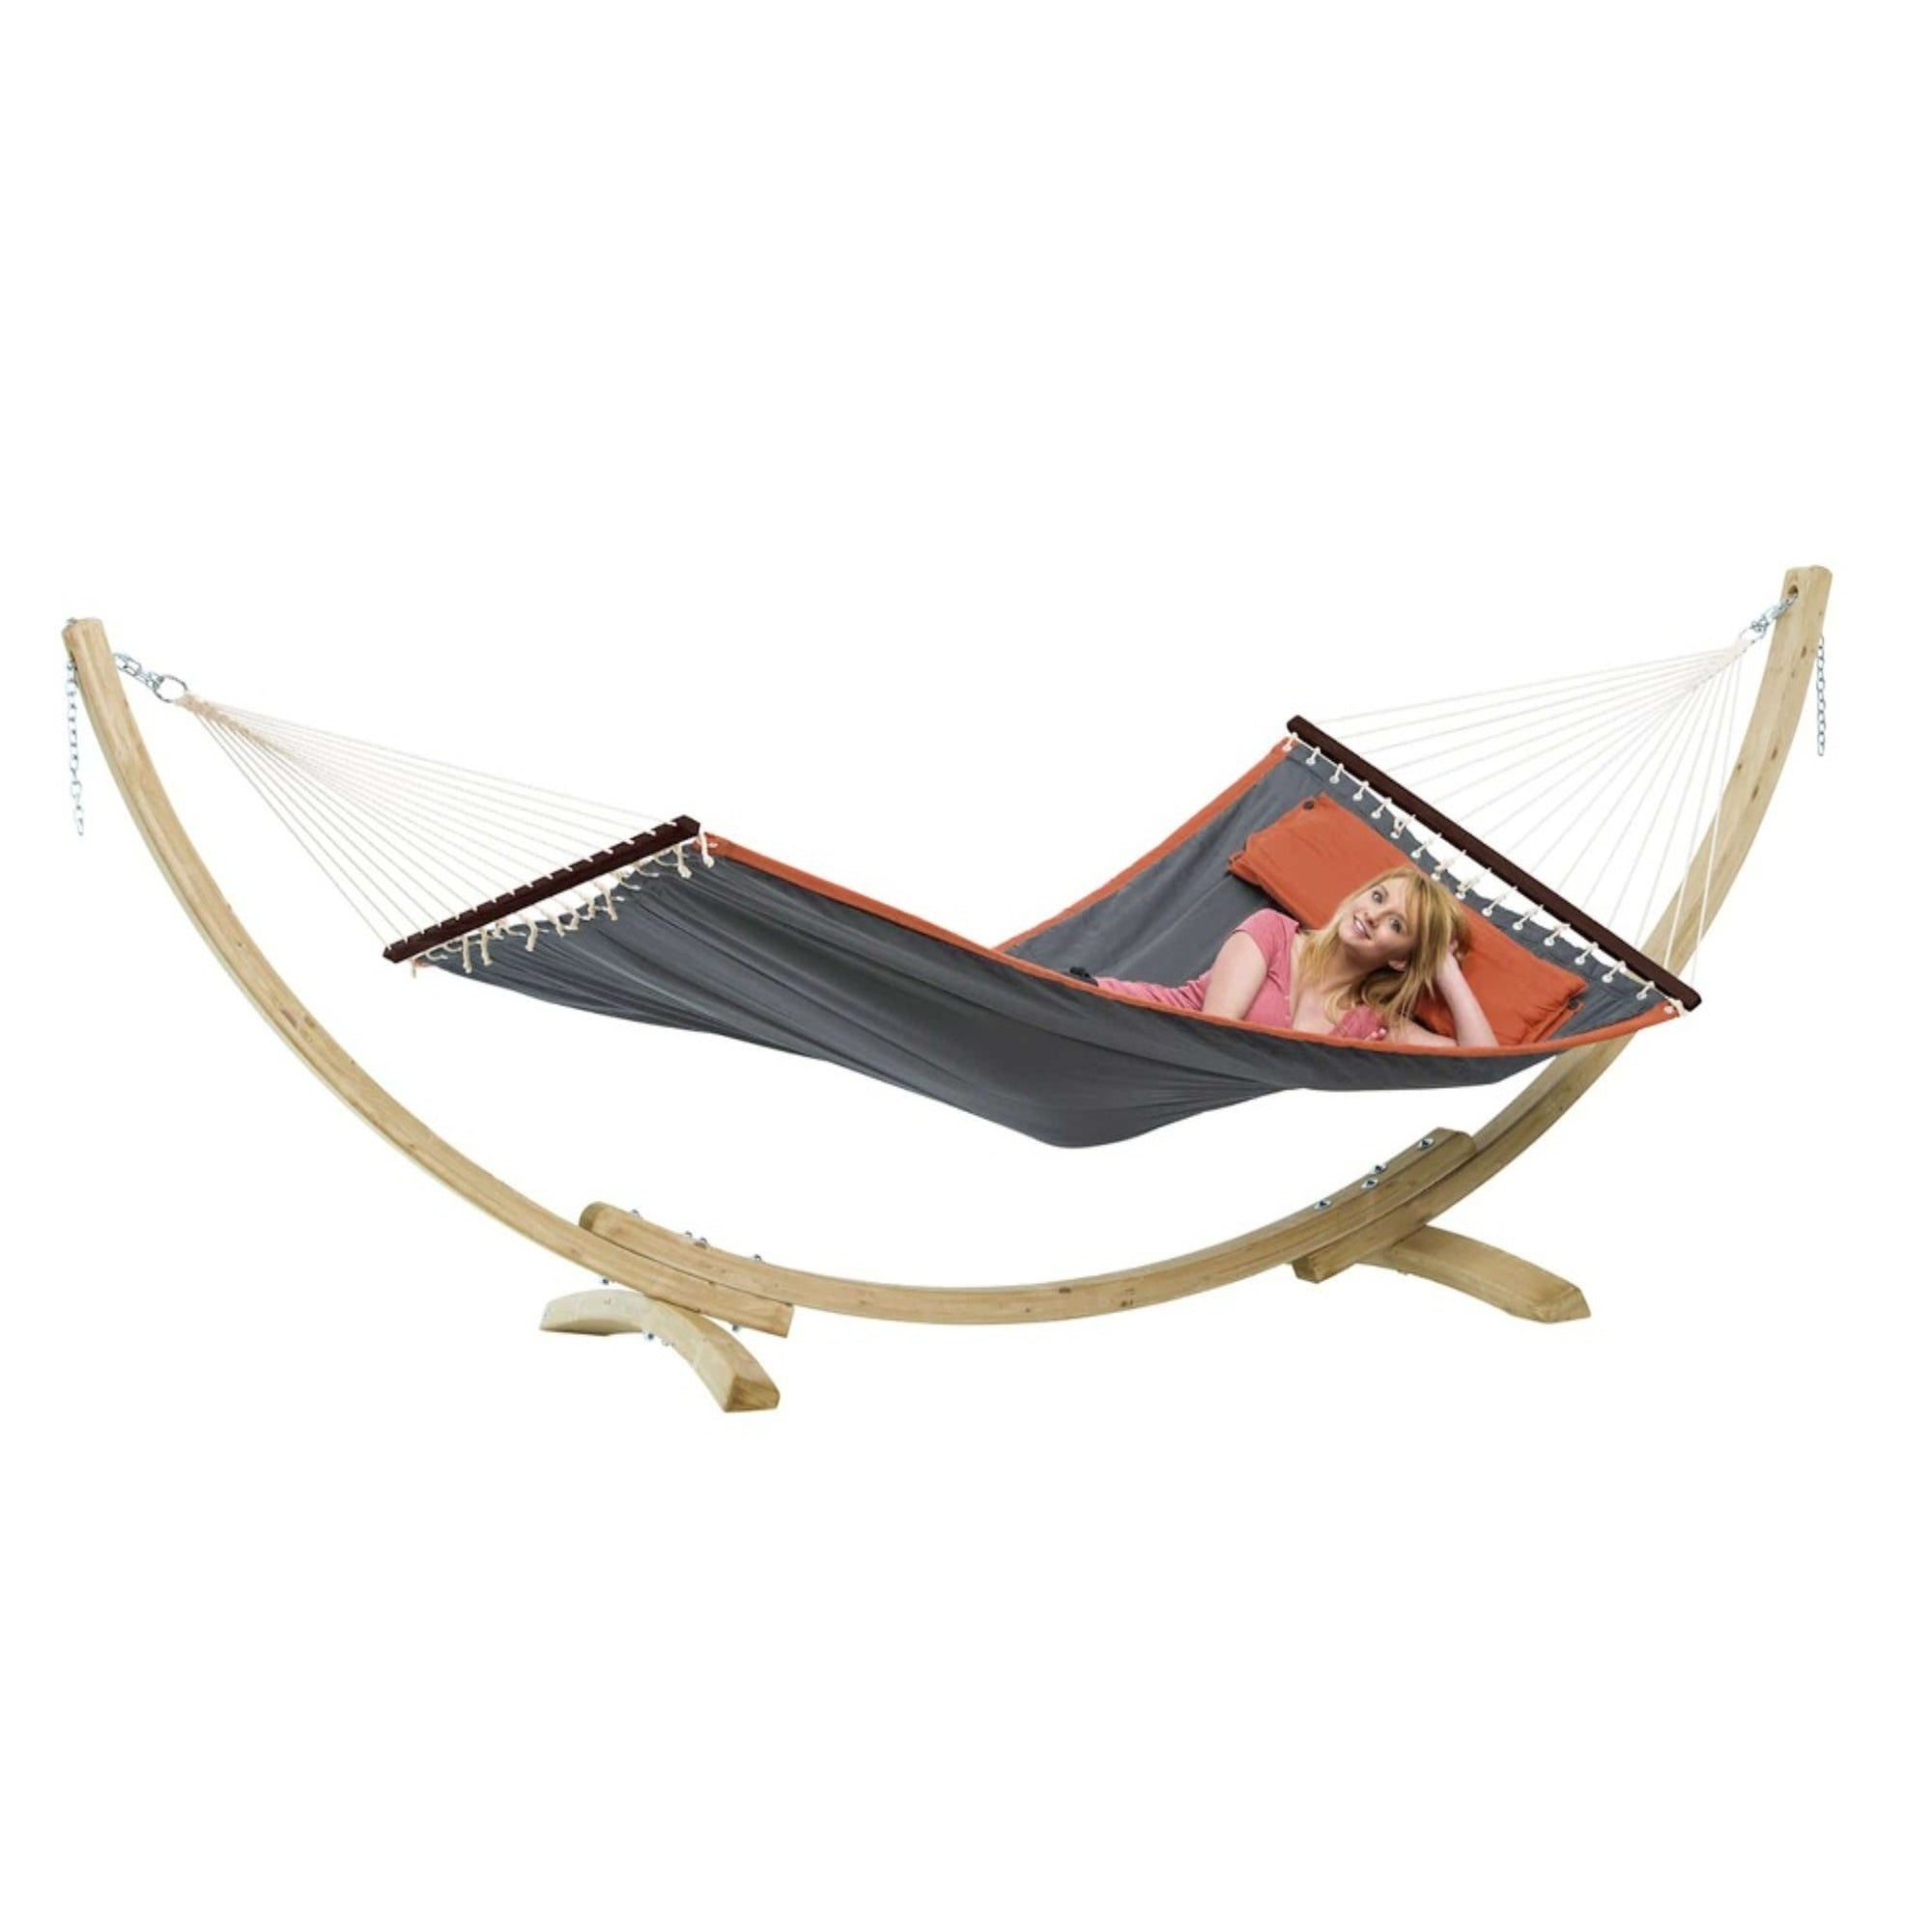 Spreader bar hammock and wooden stand with cushion